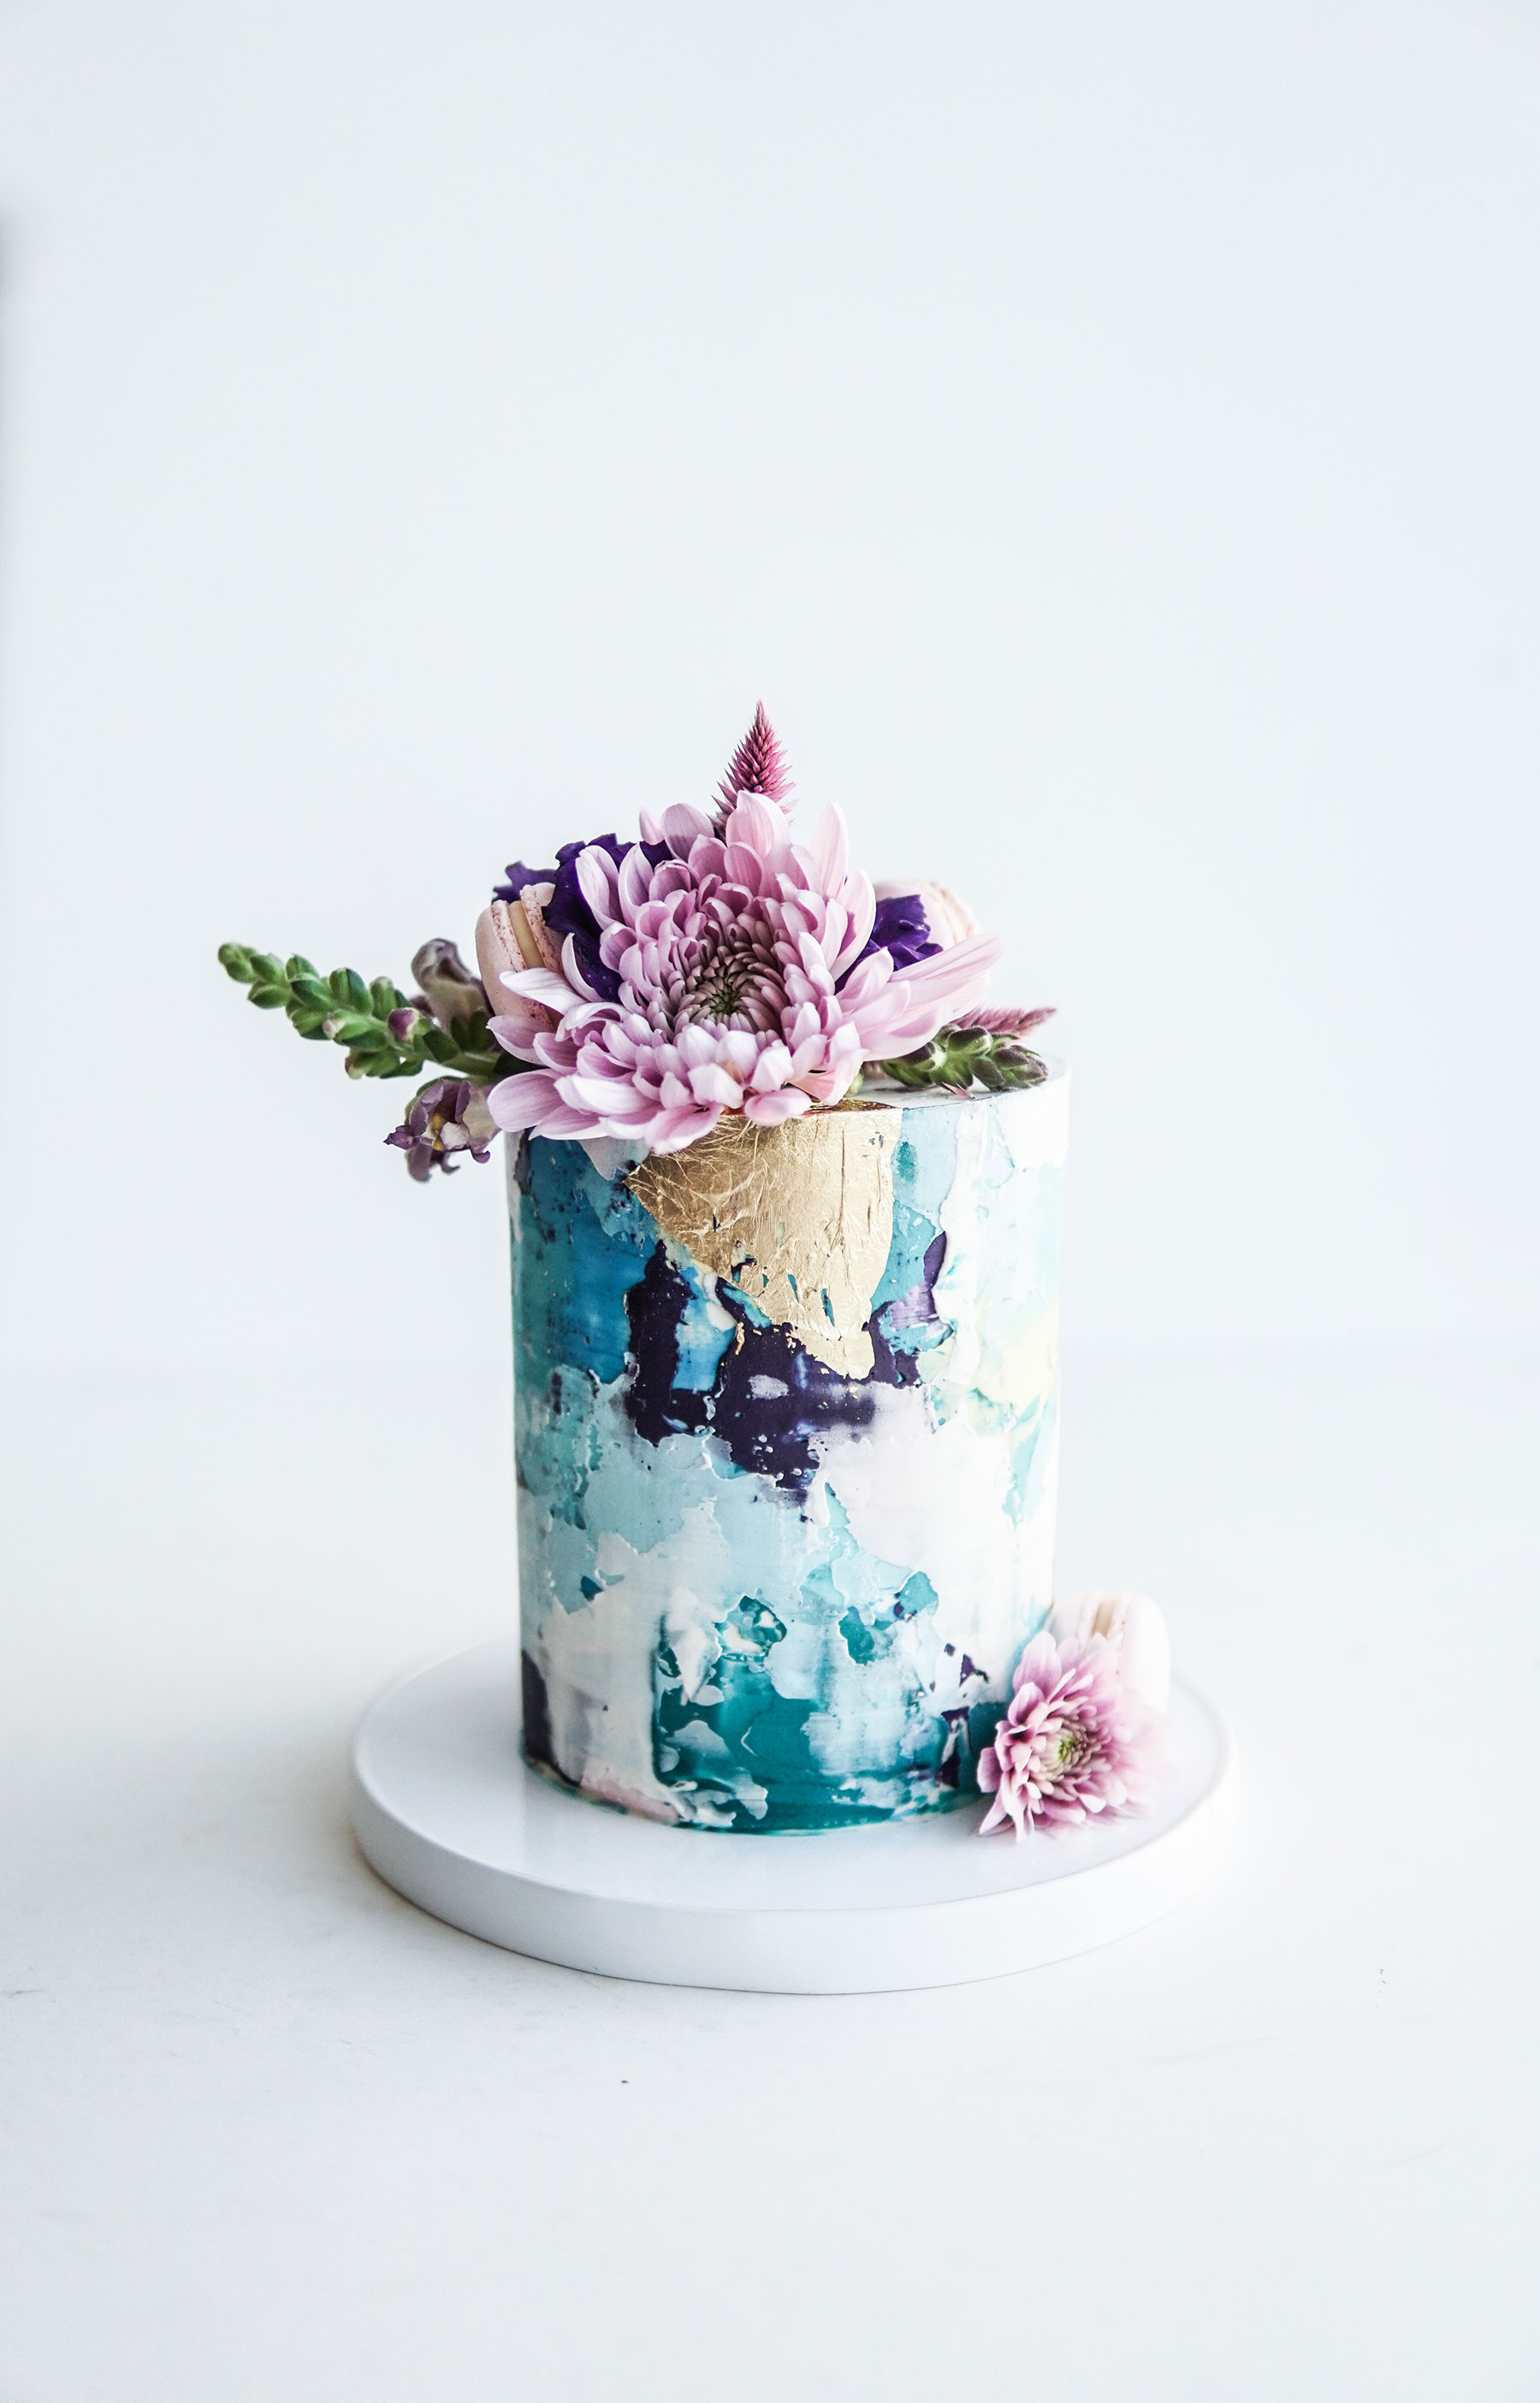 Joburg-Textured-Buttercream-Workshop